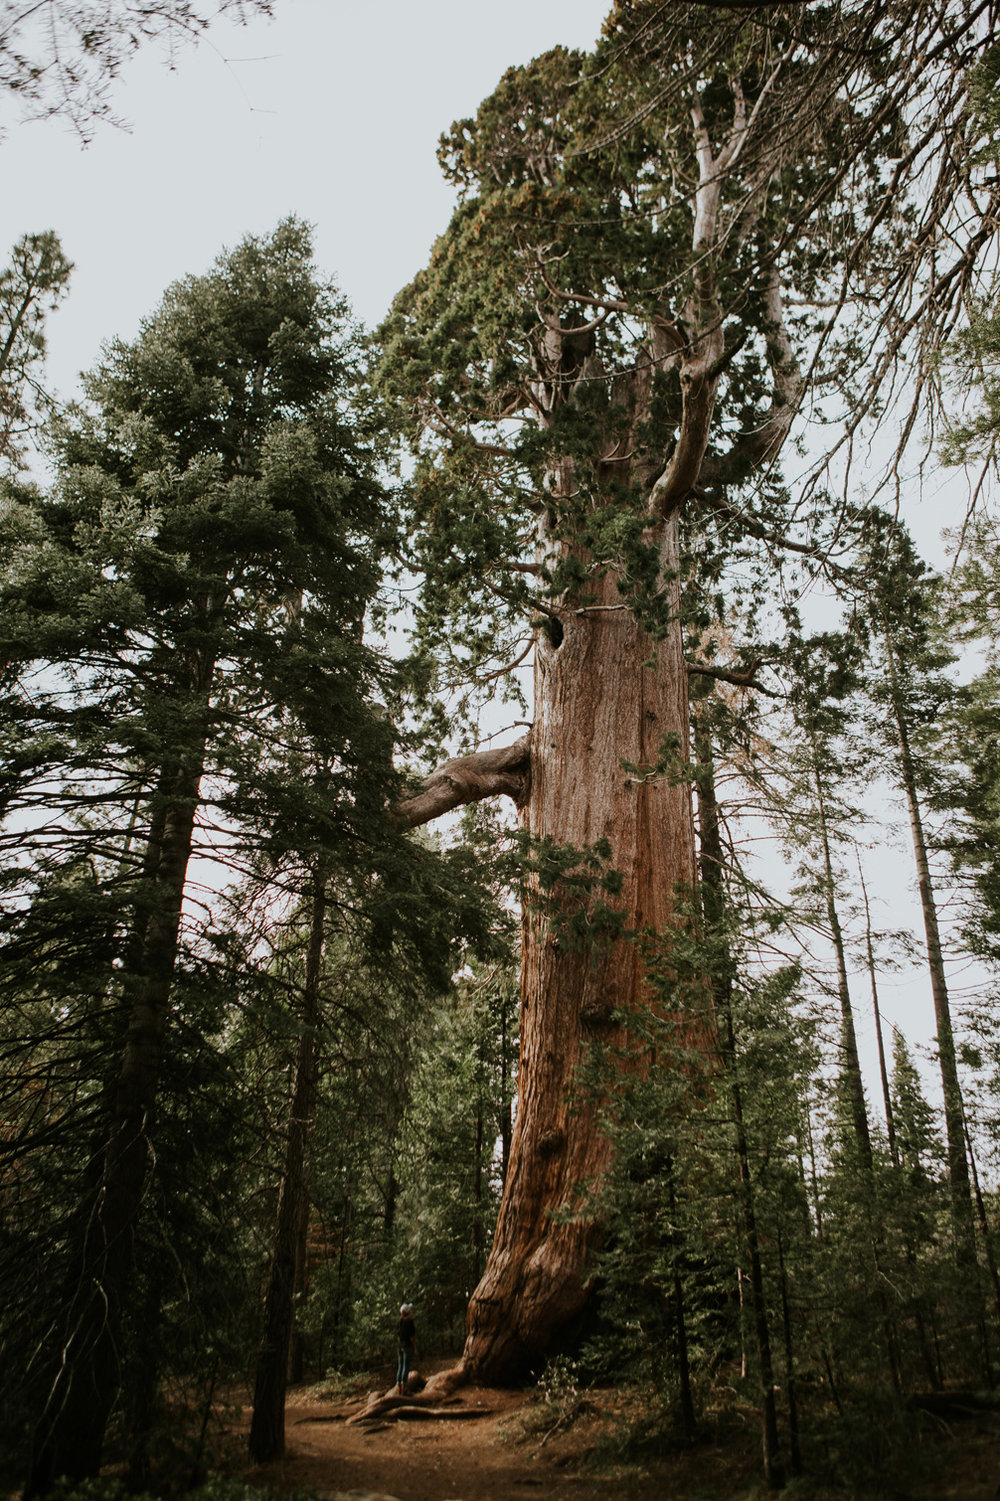 CindyGiovagnoli_California_Sequoia_Kings_Canyon_National_Park_trees_travel_road_trip-014.jpg